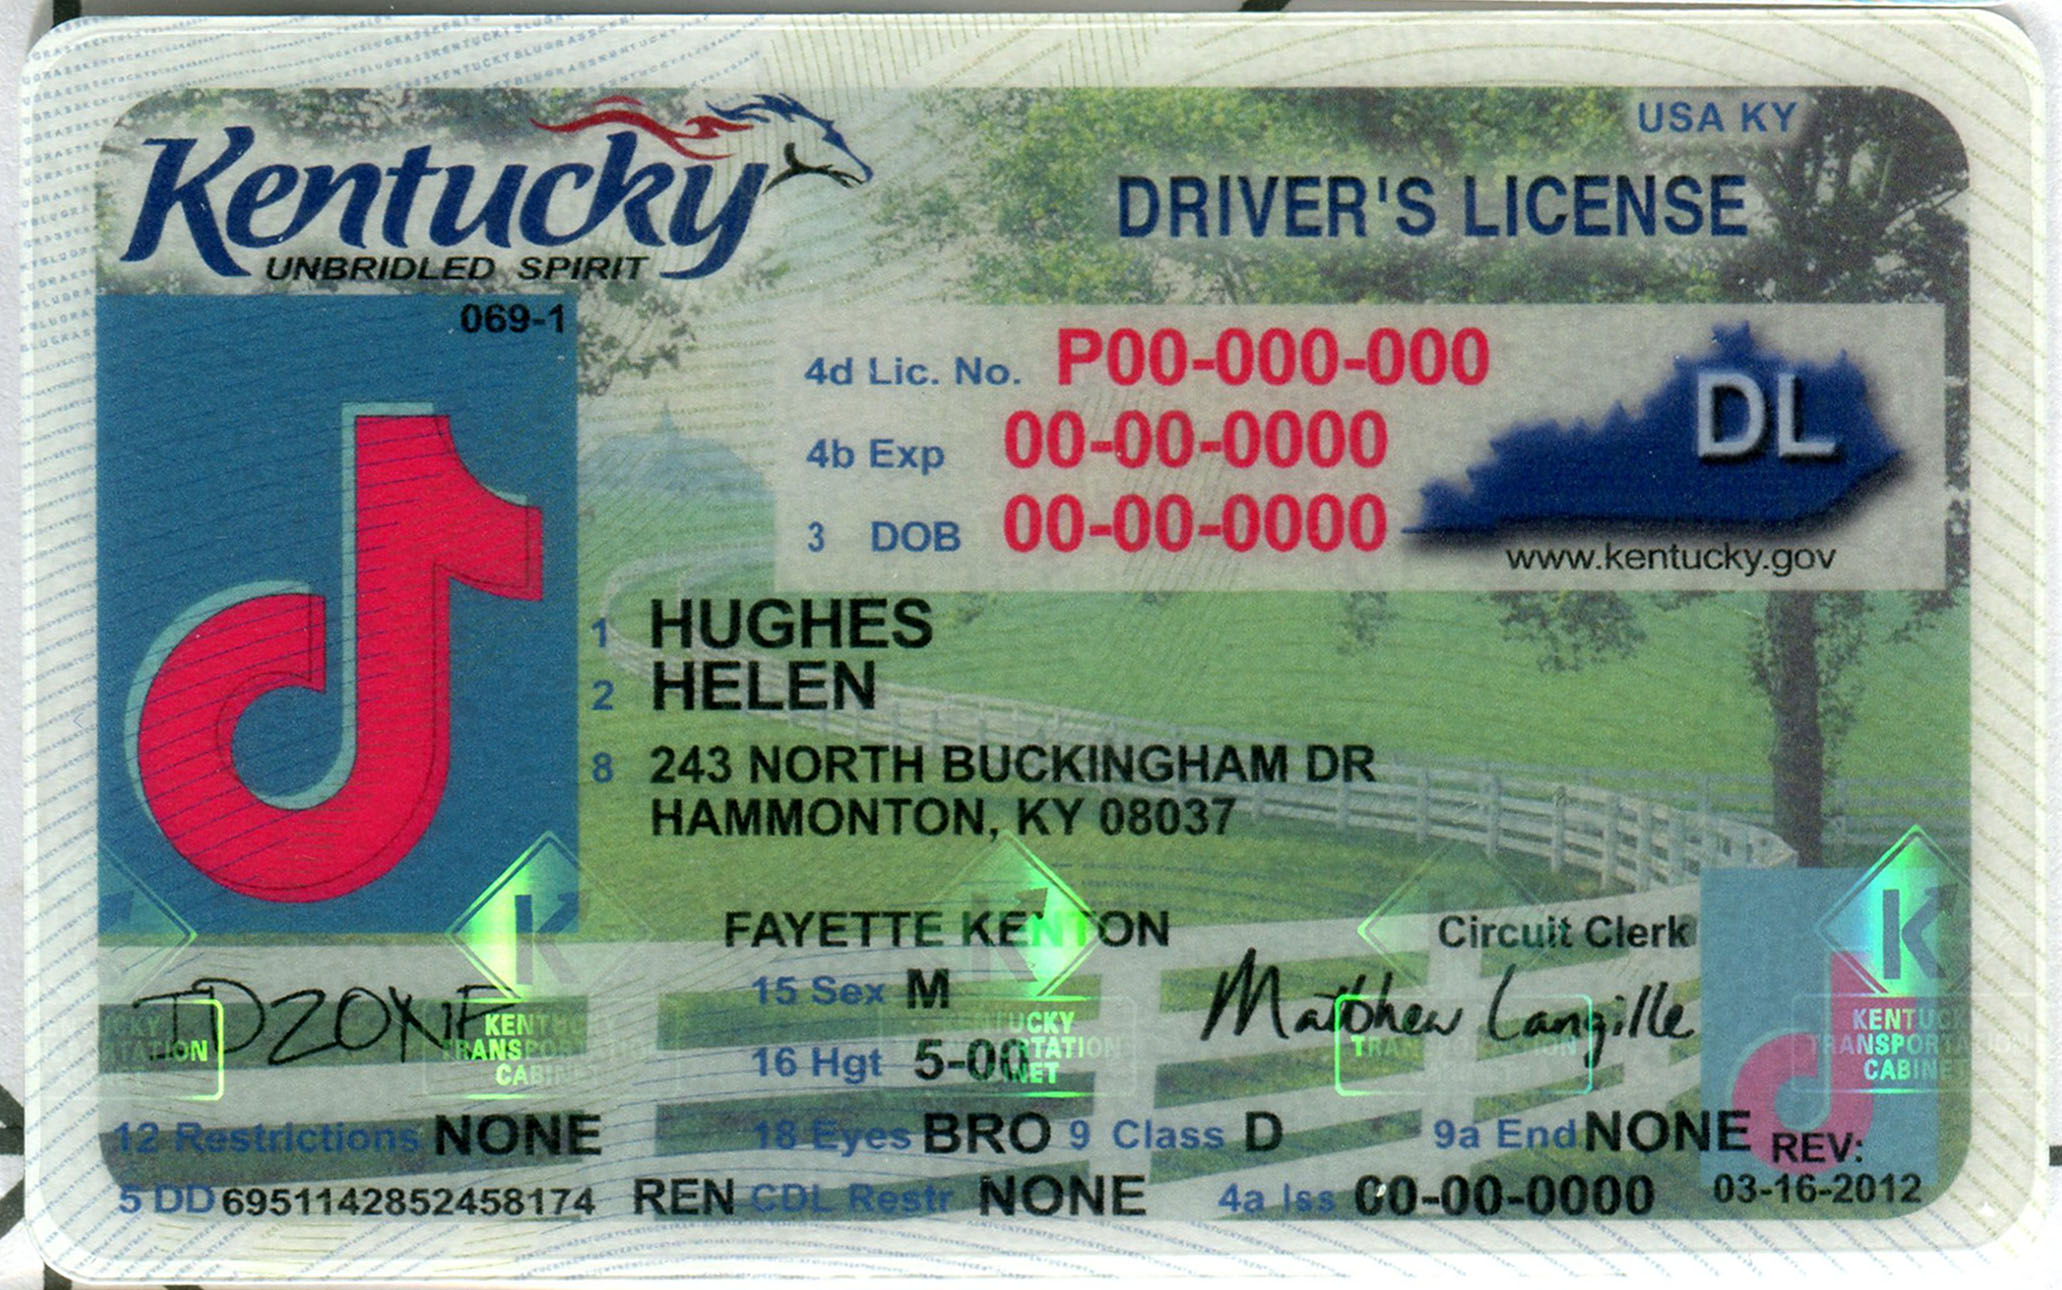 KENTUCKY fake id